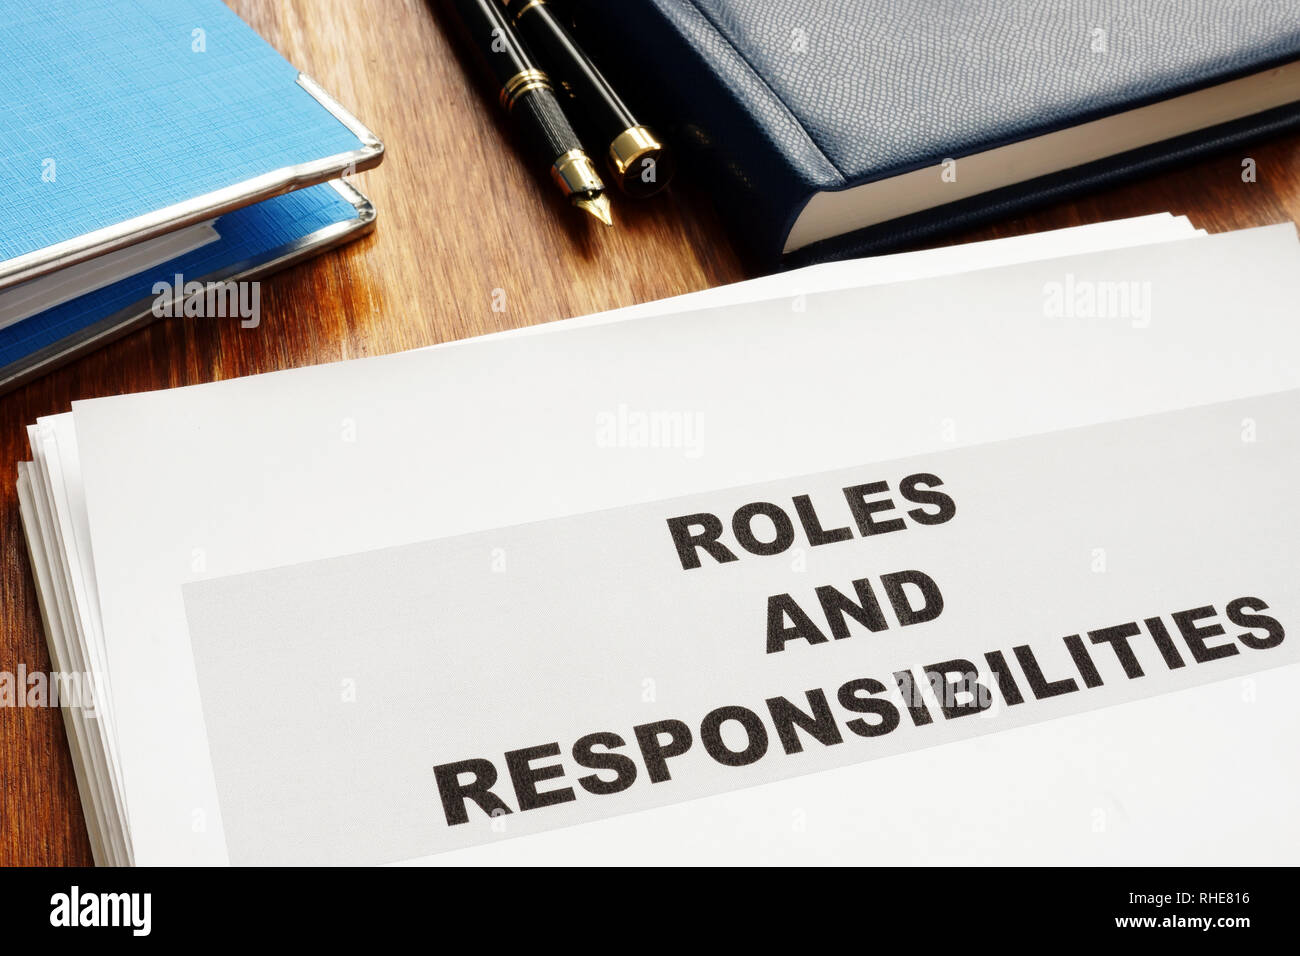 Roles and Responsibilities documents on a desk. - Stock Image